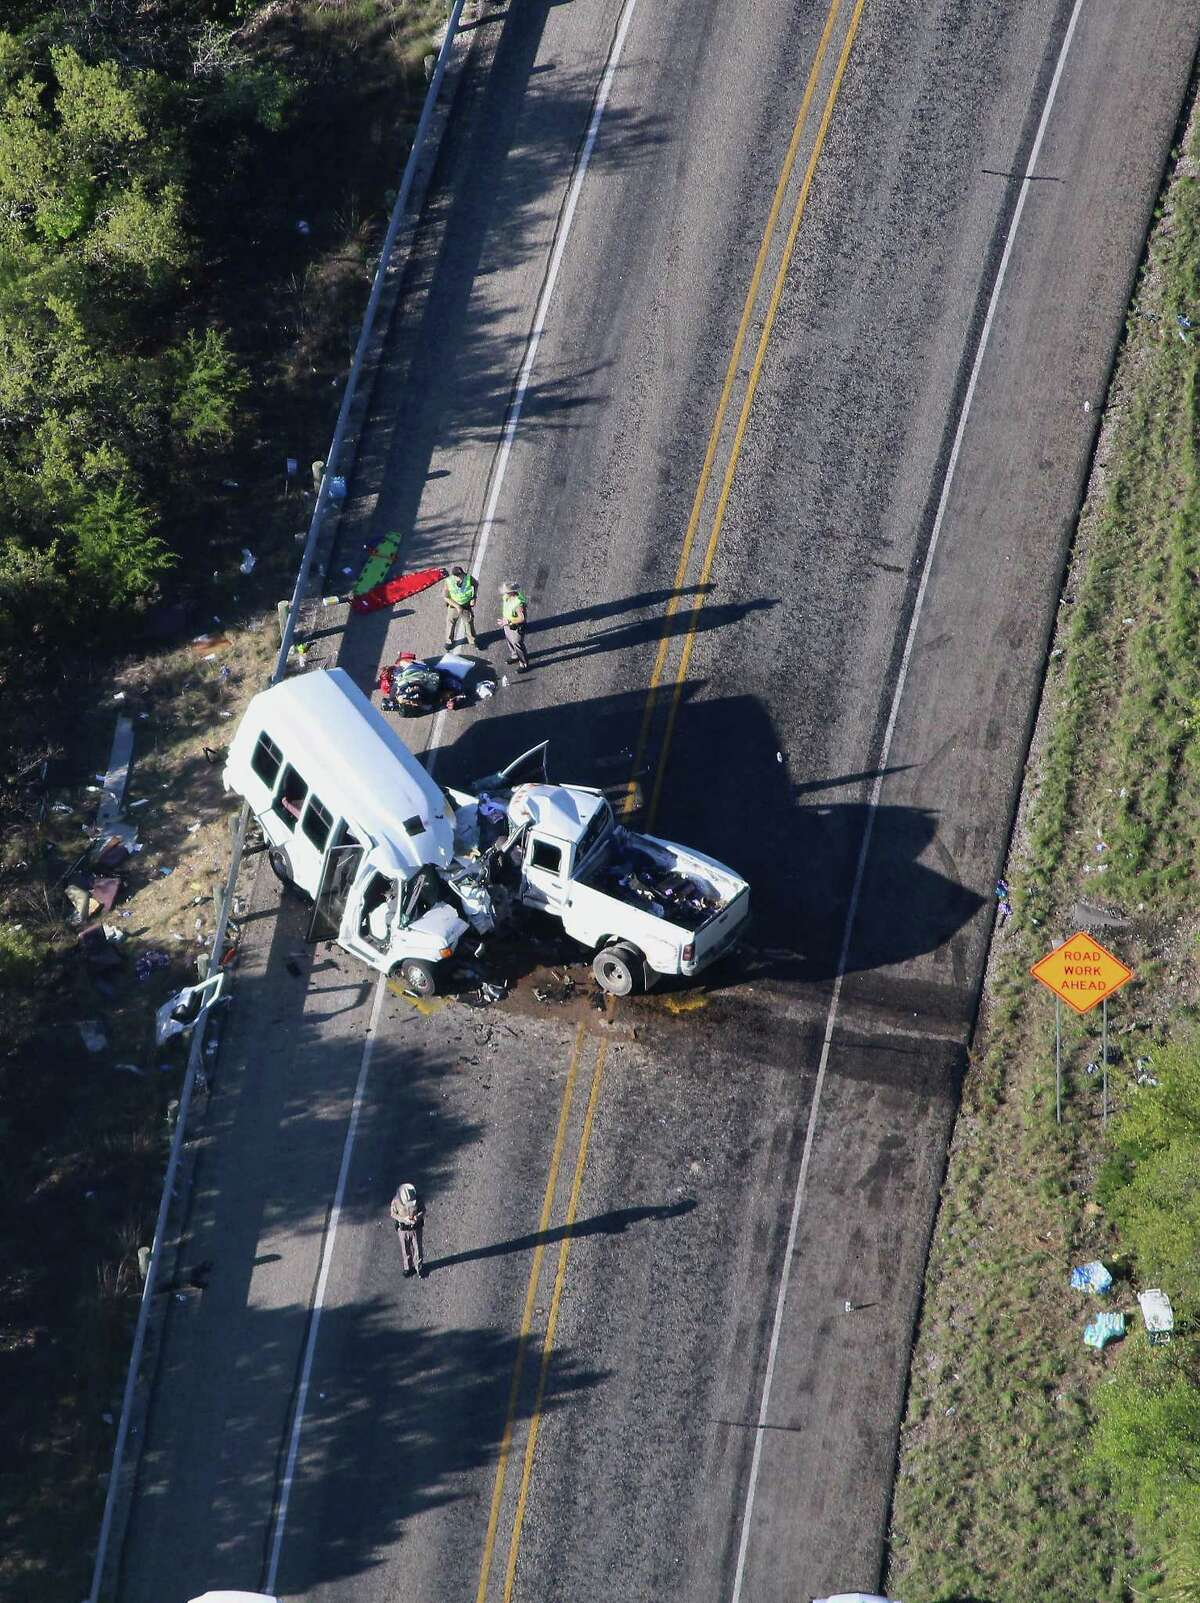 Investigators comb over the scene of an accident where 13 individuals were killed after a bus collided with a pickup truck head-on south of Garner State Park on Highway 83. The bus was carrying a group from the New Braunfels First Baptist Church who had been camping at the park. The driver of the truck, 20-year-old Jack Dillon Young, was air-lifted to a San Antonio hospital in stable condition. The NTSB is investigating the accident.